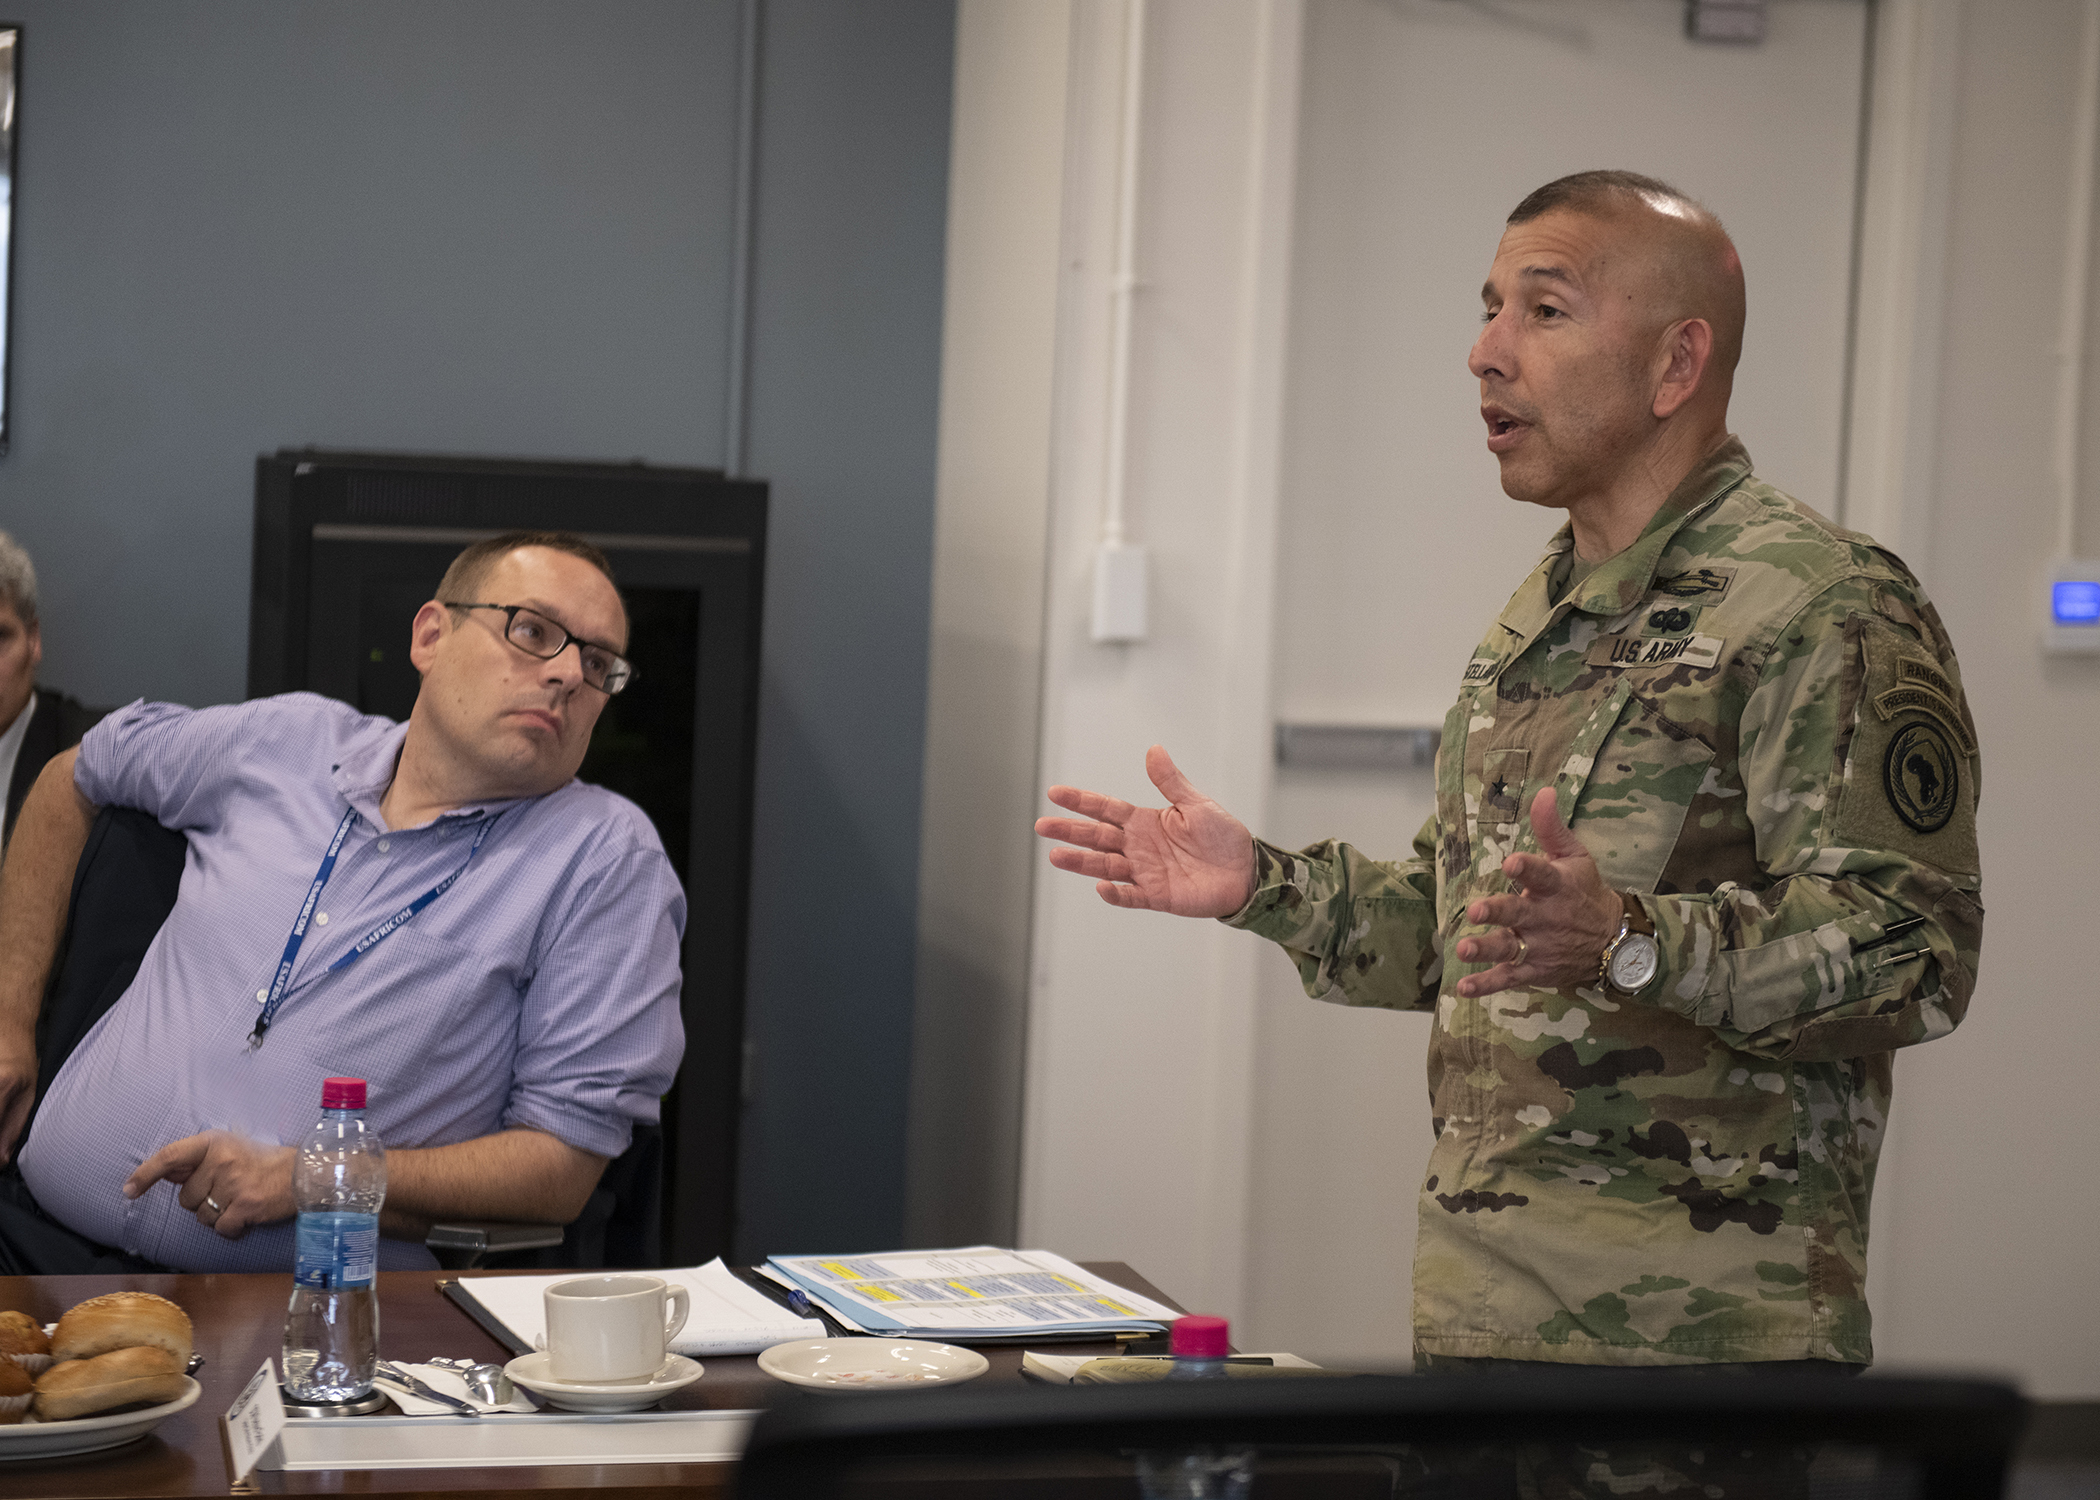 "U.S. Army Brig. Gen. Miguel Castellanos, deputy commanding general - Somalia, Combined Joint Task Force-Horn of Africa (CJTF-HOA), presents thoughts after a briefing titled ""Triggers of Regional Instability"" during the East Africa Security Forum (EASF) at Camp Lemonnier, Djibouti, Dec. 11, 2018. The EASF is an annual opportunity for CJTF-HOA and interagency leaders to sync, assess and align efforts to develop synchronized courses of action that support common goals. (U.S. Air Force photo by Tech. Sgt. Shawn Nickel)"